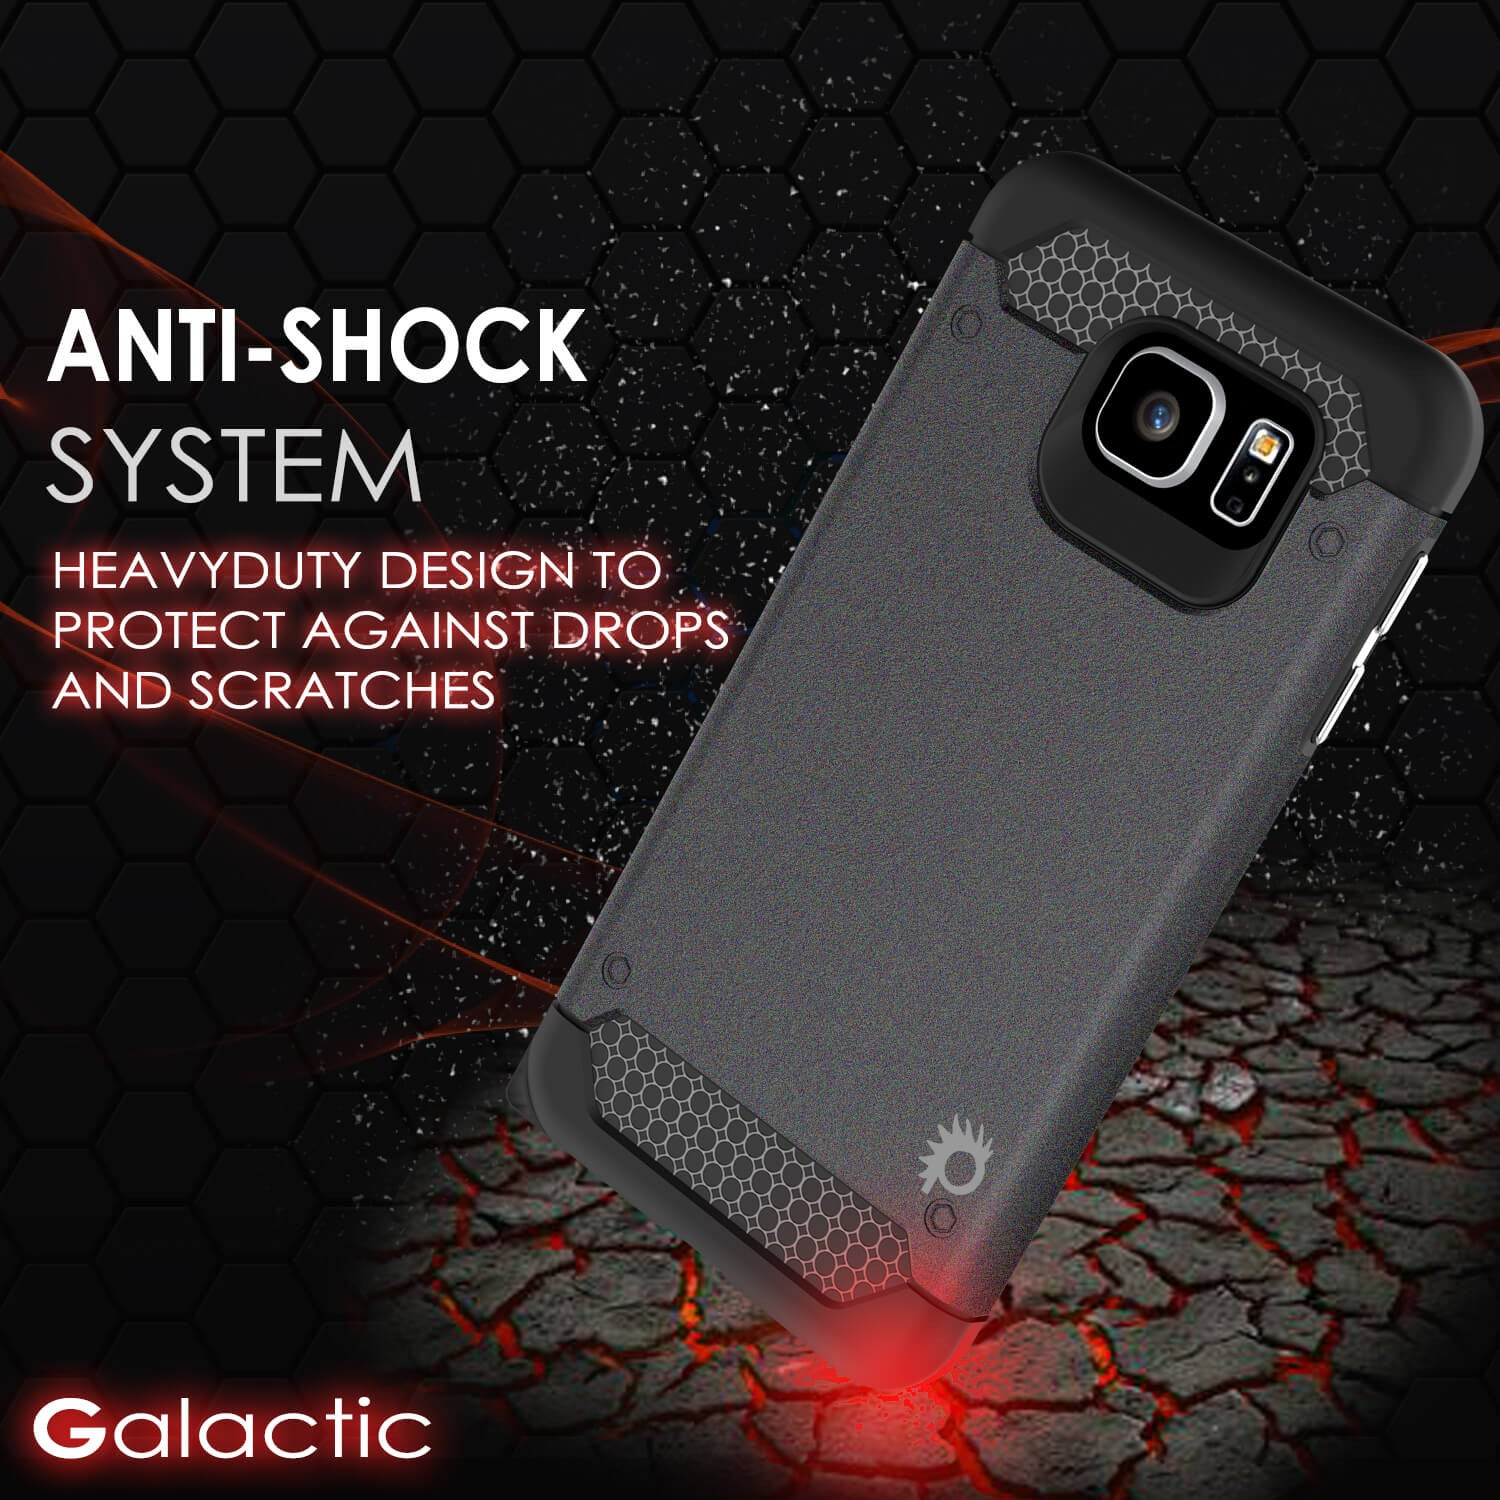 Galaxy s6 Case PunkCase Galactic Black Series Slim Armor Soft Cover Case w/ Tempered Glass